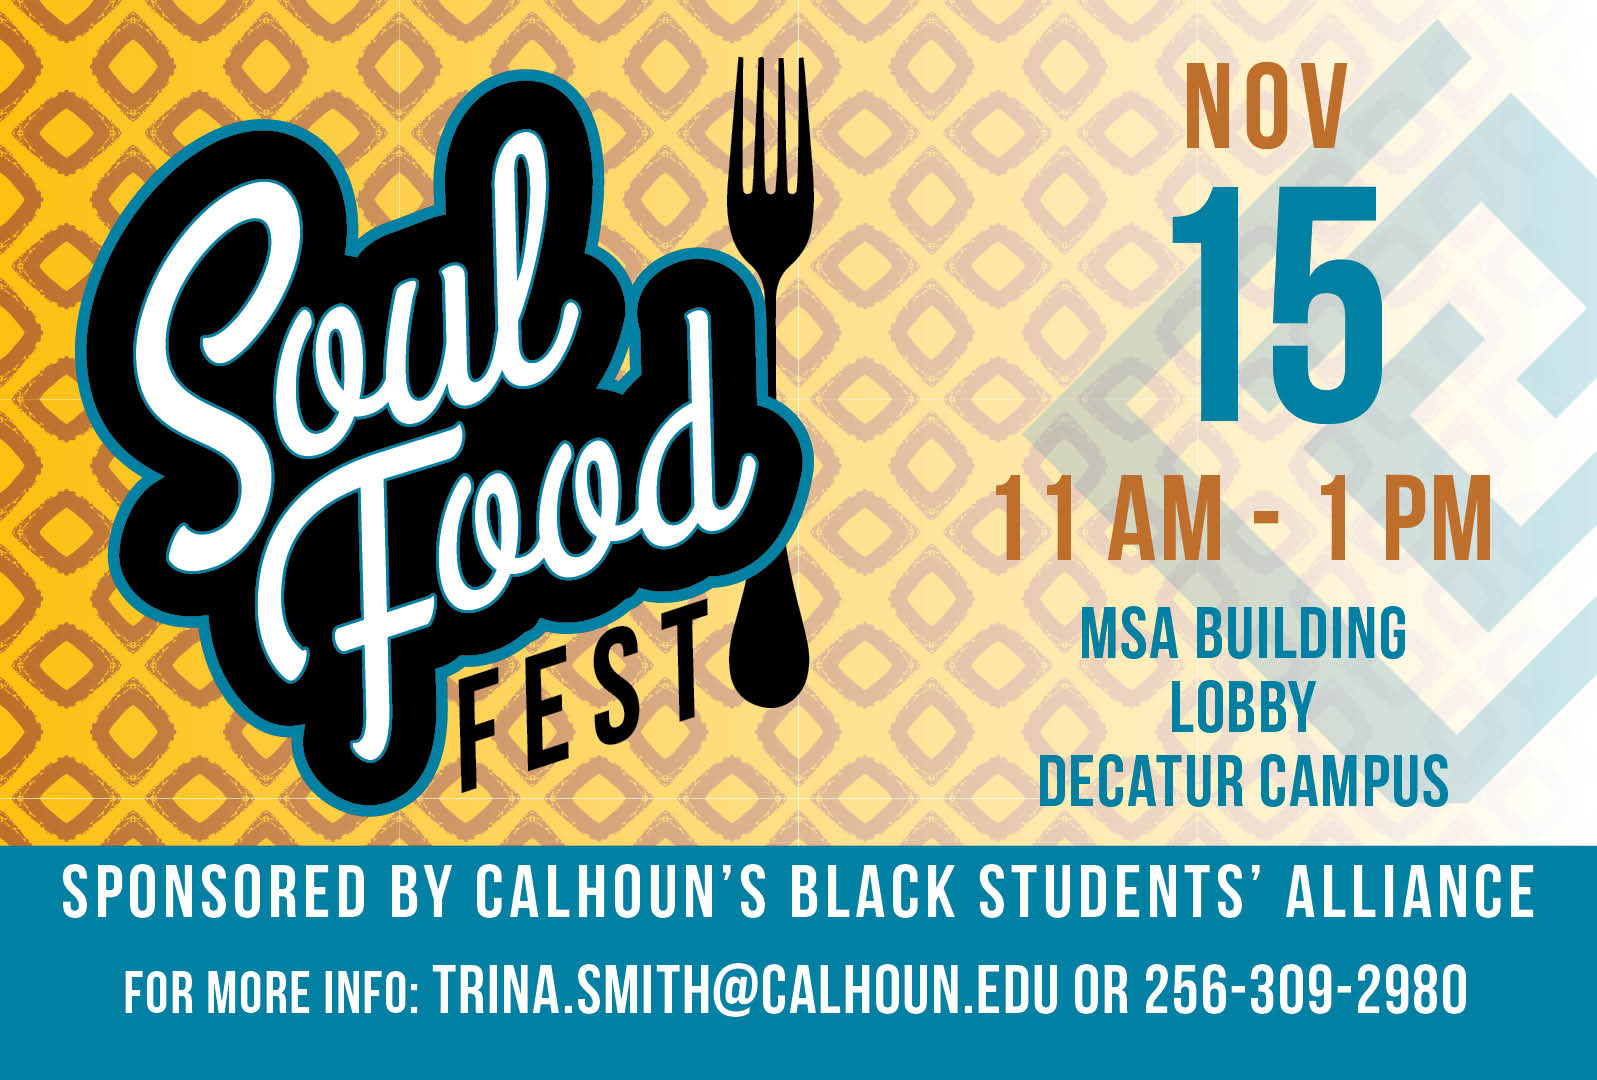 Soul Food Fest - nov 15, 11am-1pm. MSA Lobby, Decatur campus. sponsored by Calhoun's Black Students' Alliance. For more info contact trina.smith@calhoun.edu or 256-309-2980